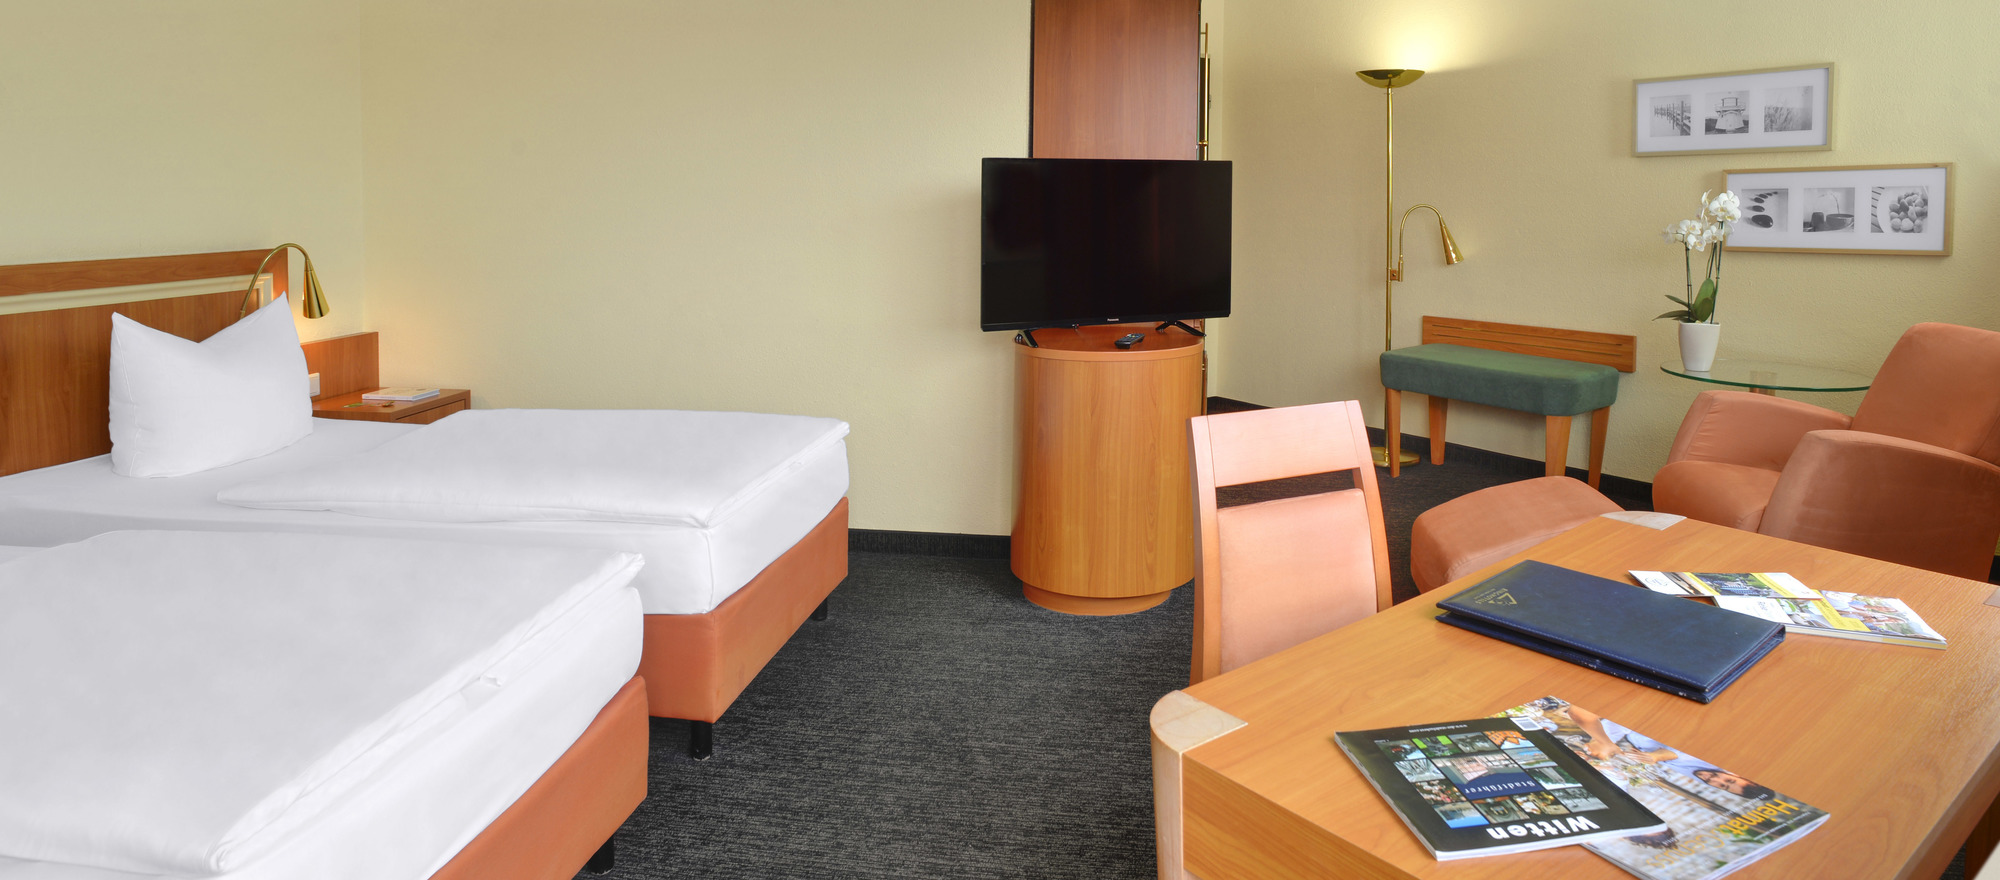 Well equiped rooms at the 3-star-superior hotel Ringhotel Parkhotel Witten in Witten